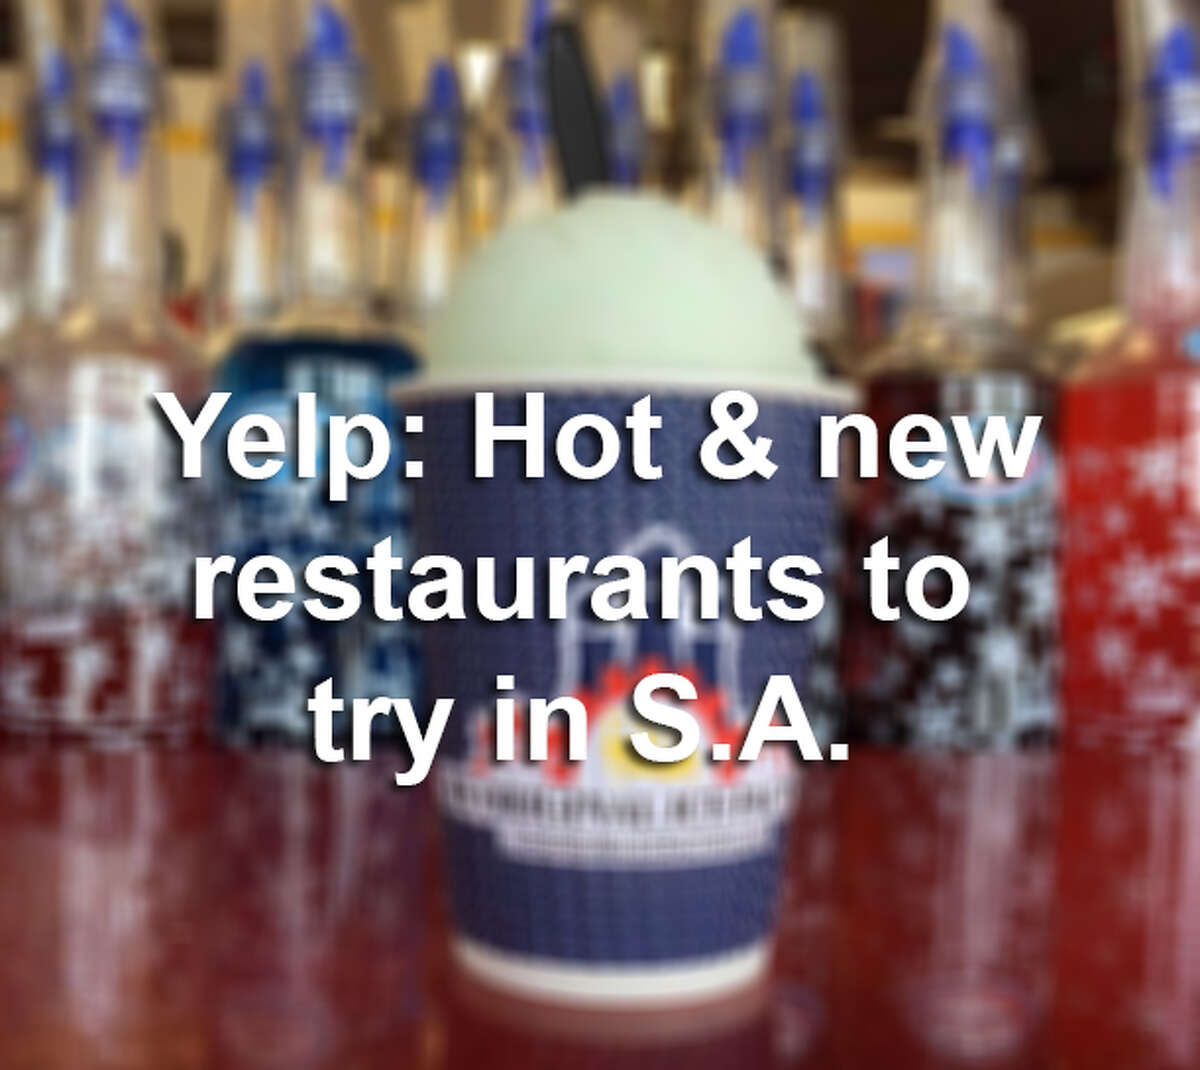 Click ahead to find out the best new restaurants in San Antonio, according to Yelp users.